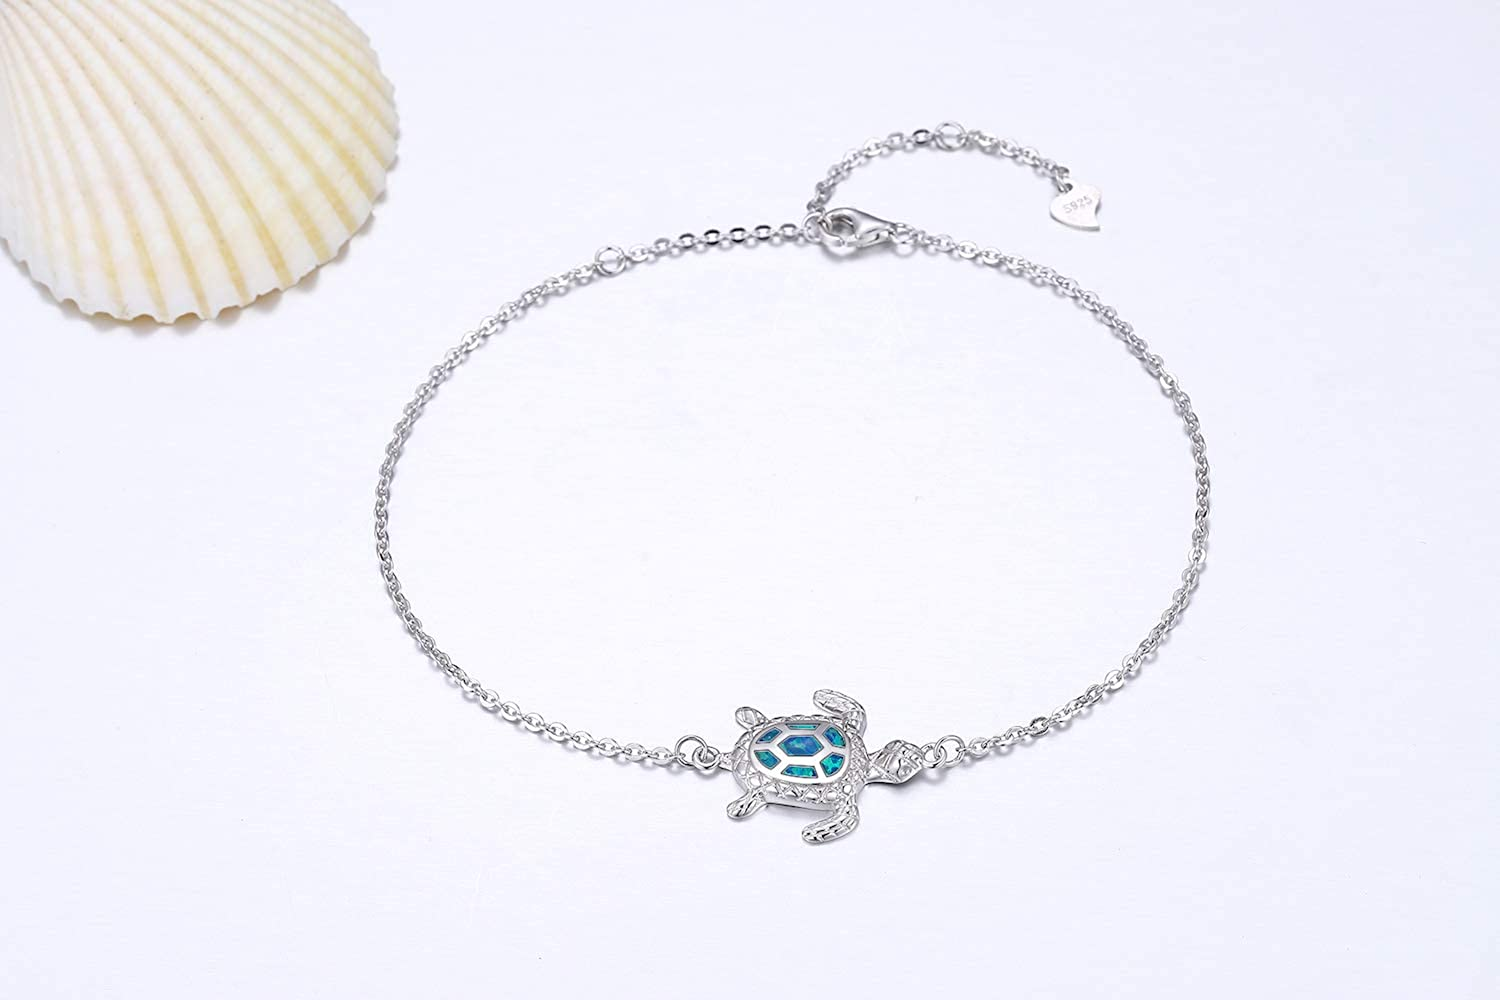 Beach Anklets Sea Turtle Anklet Sea Turtle Ankle Bracelet Turtle Jewelry Sea Life Gift Ocean Jewelry Imitation Blue Opal Anklet